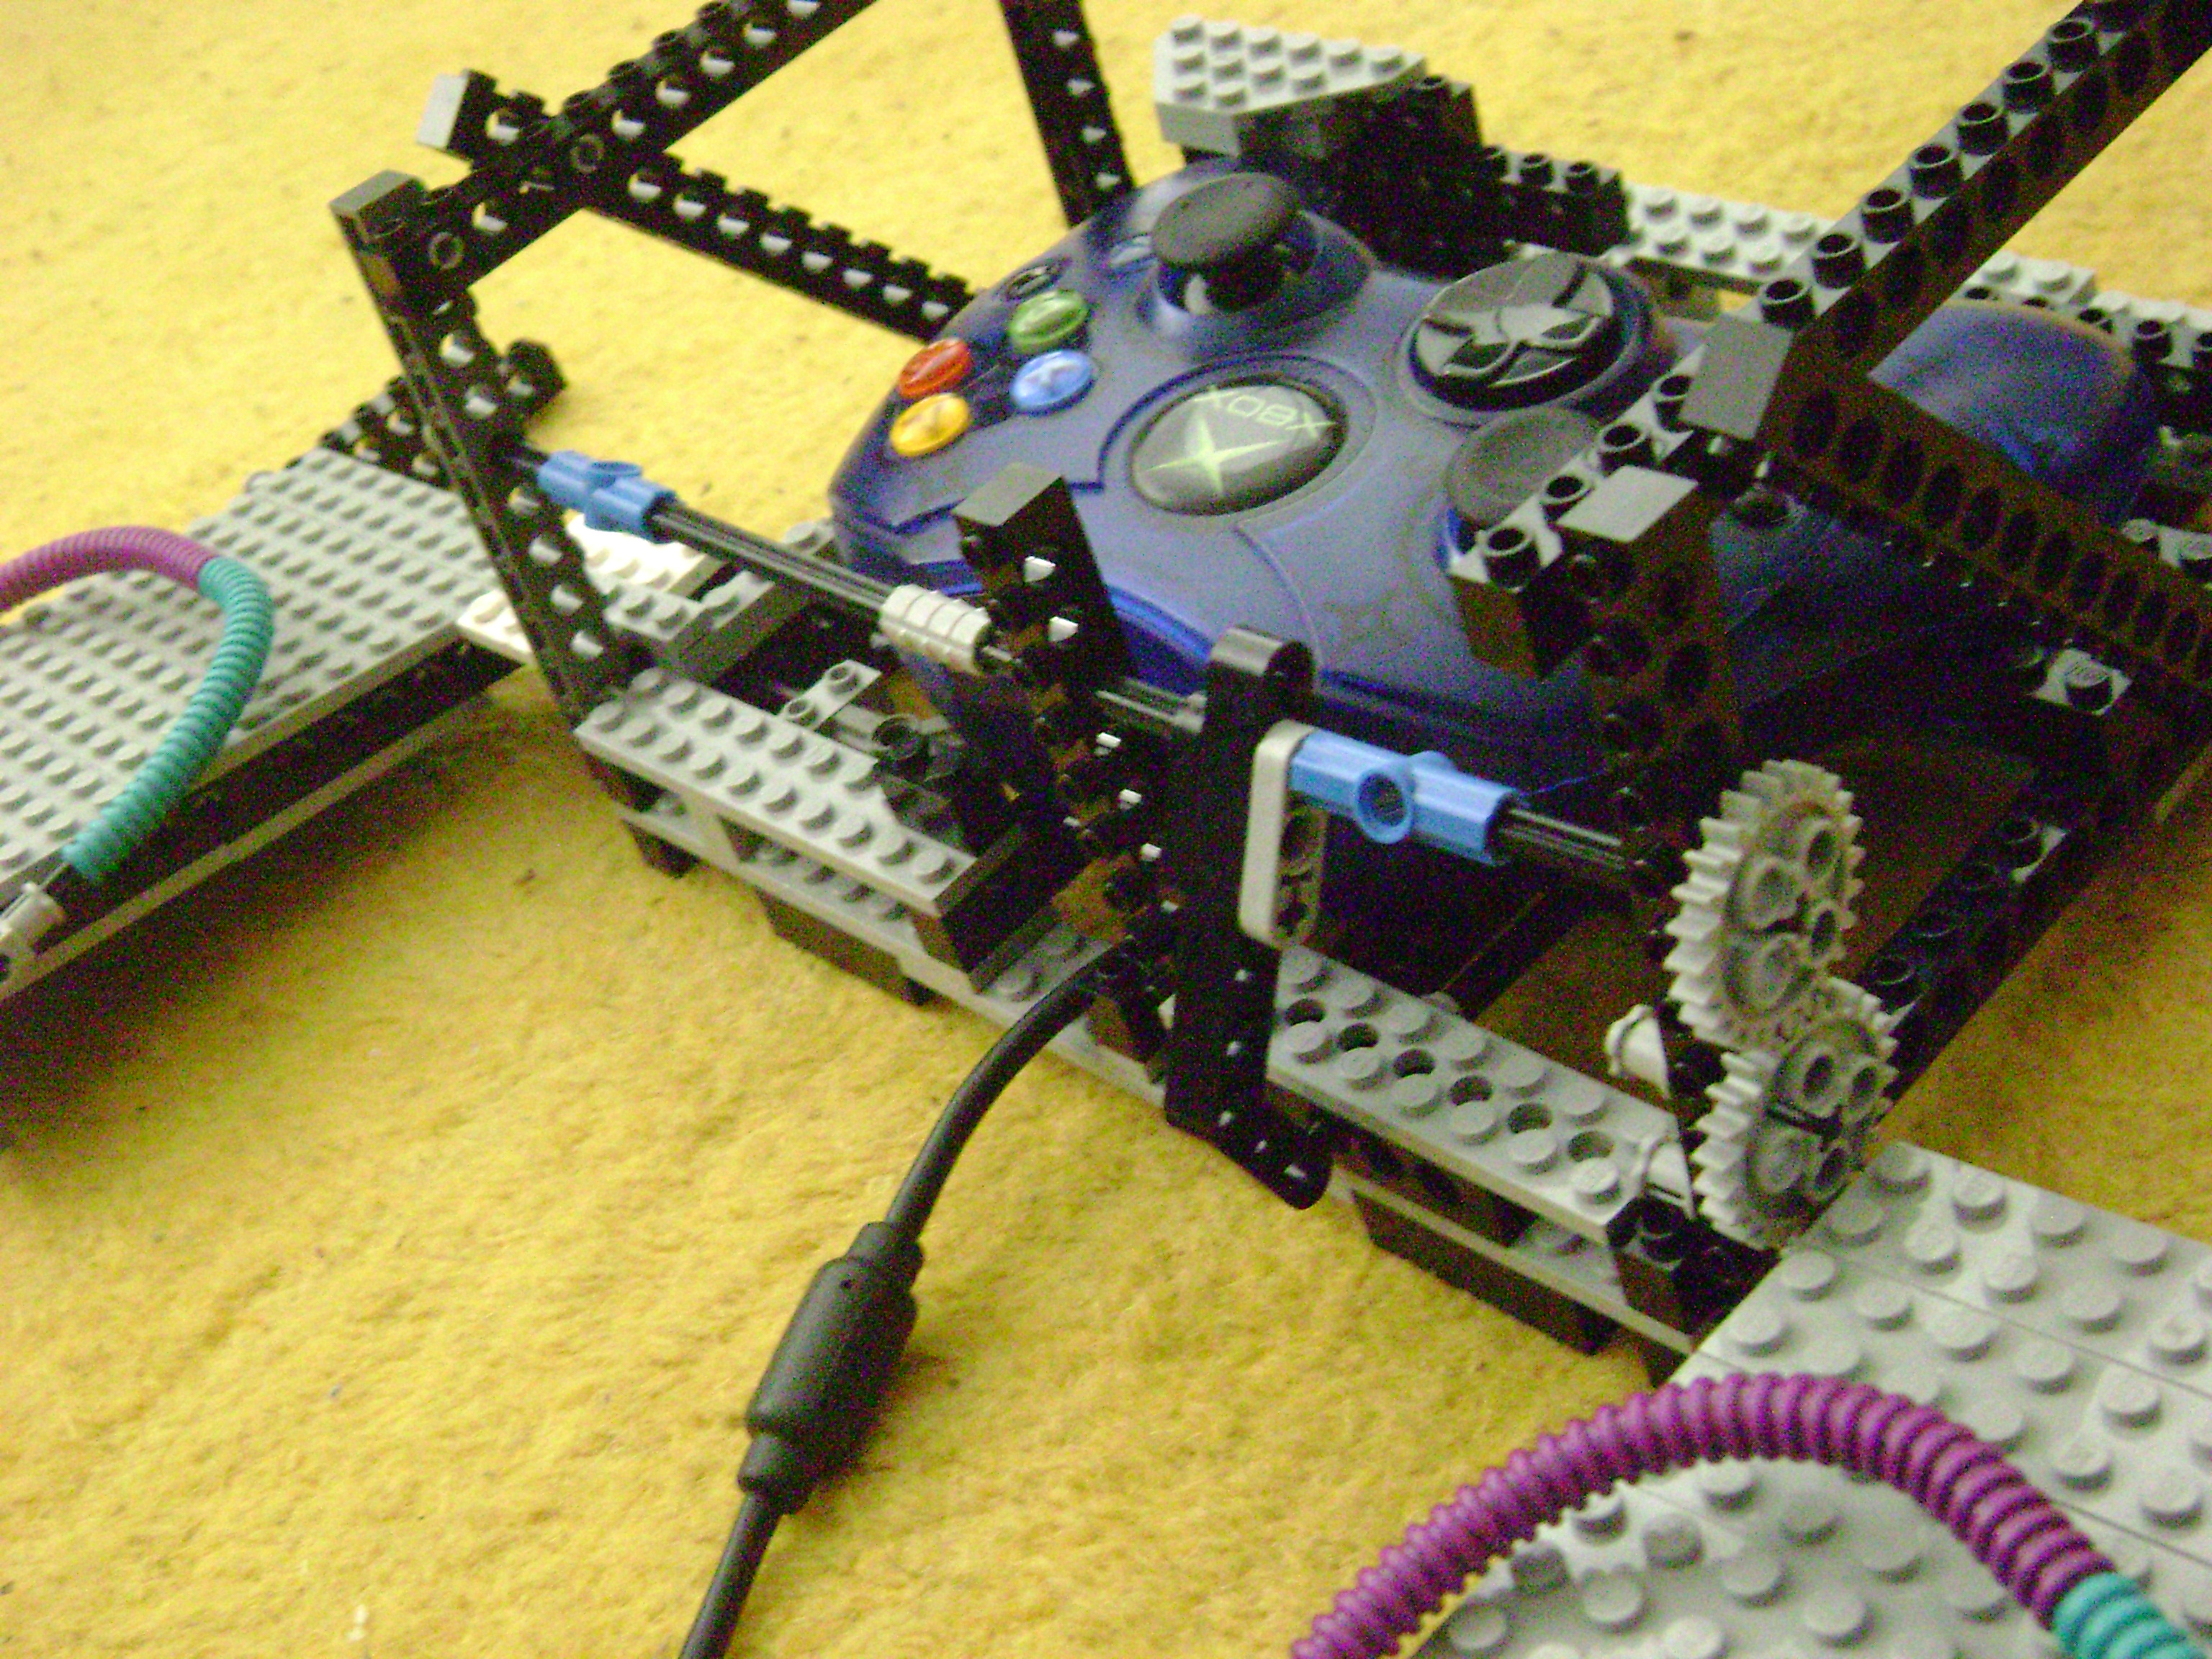 Picture of Fairly Easy Lego Mindstorms Steering Wheel for Xbox and Playstation